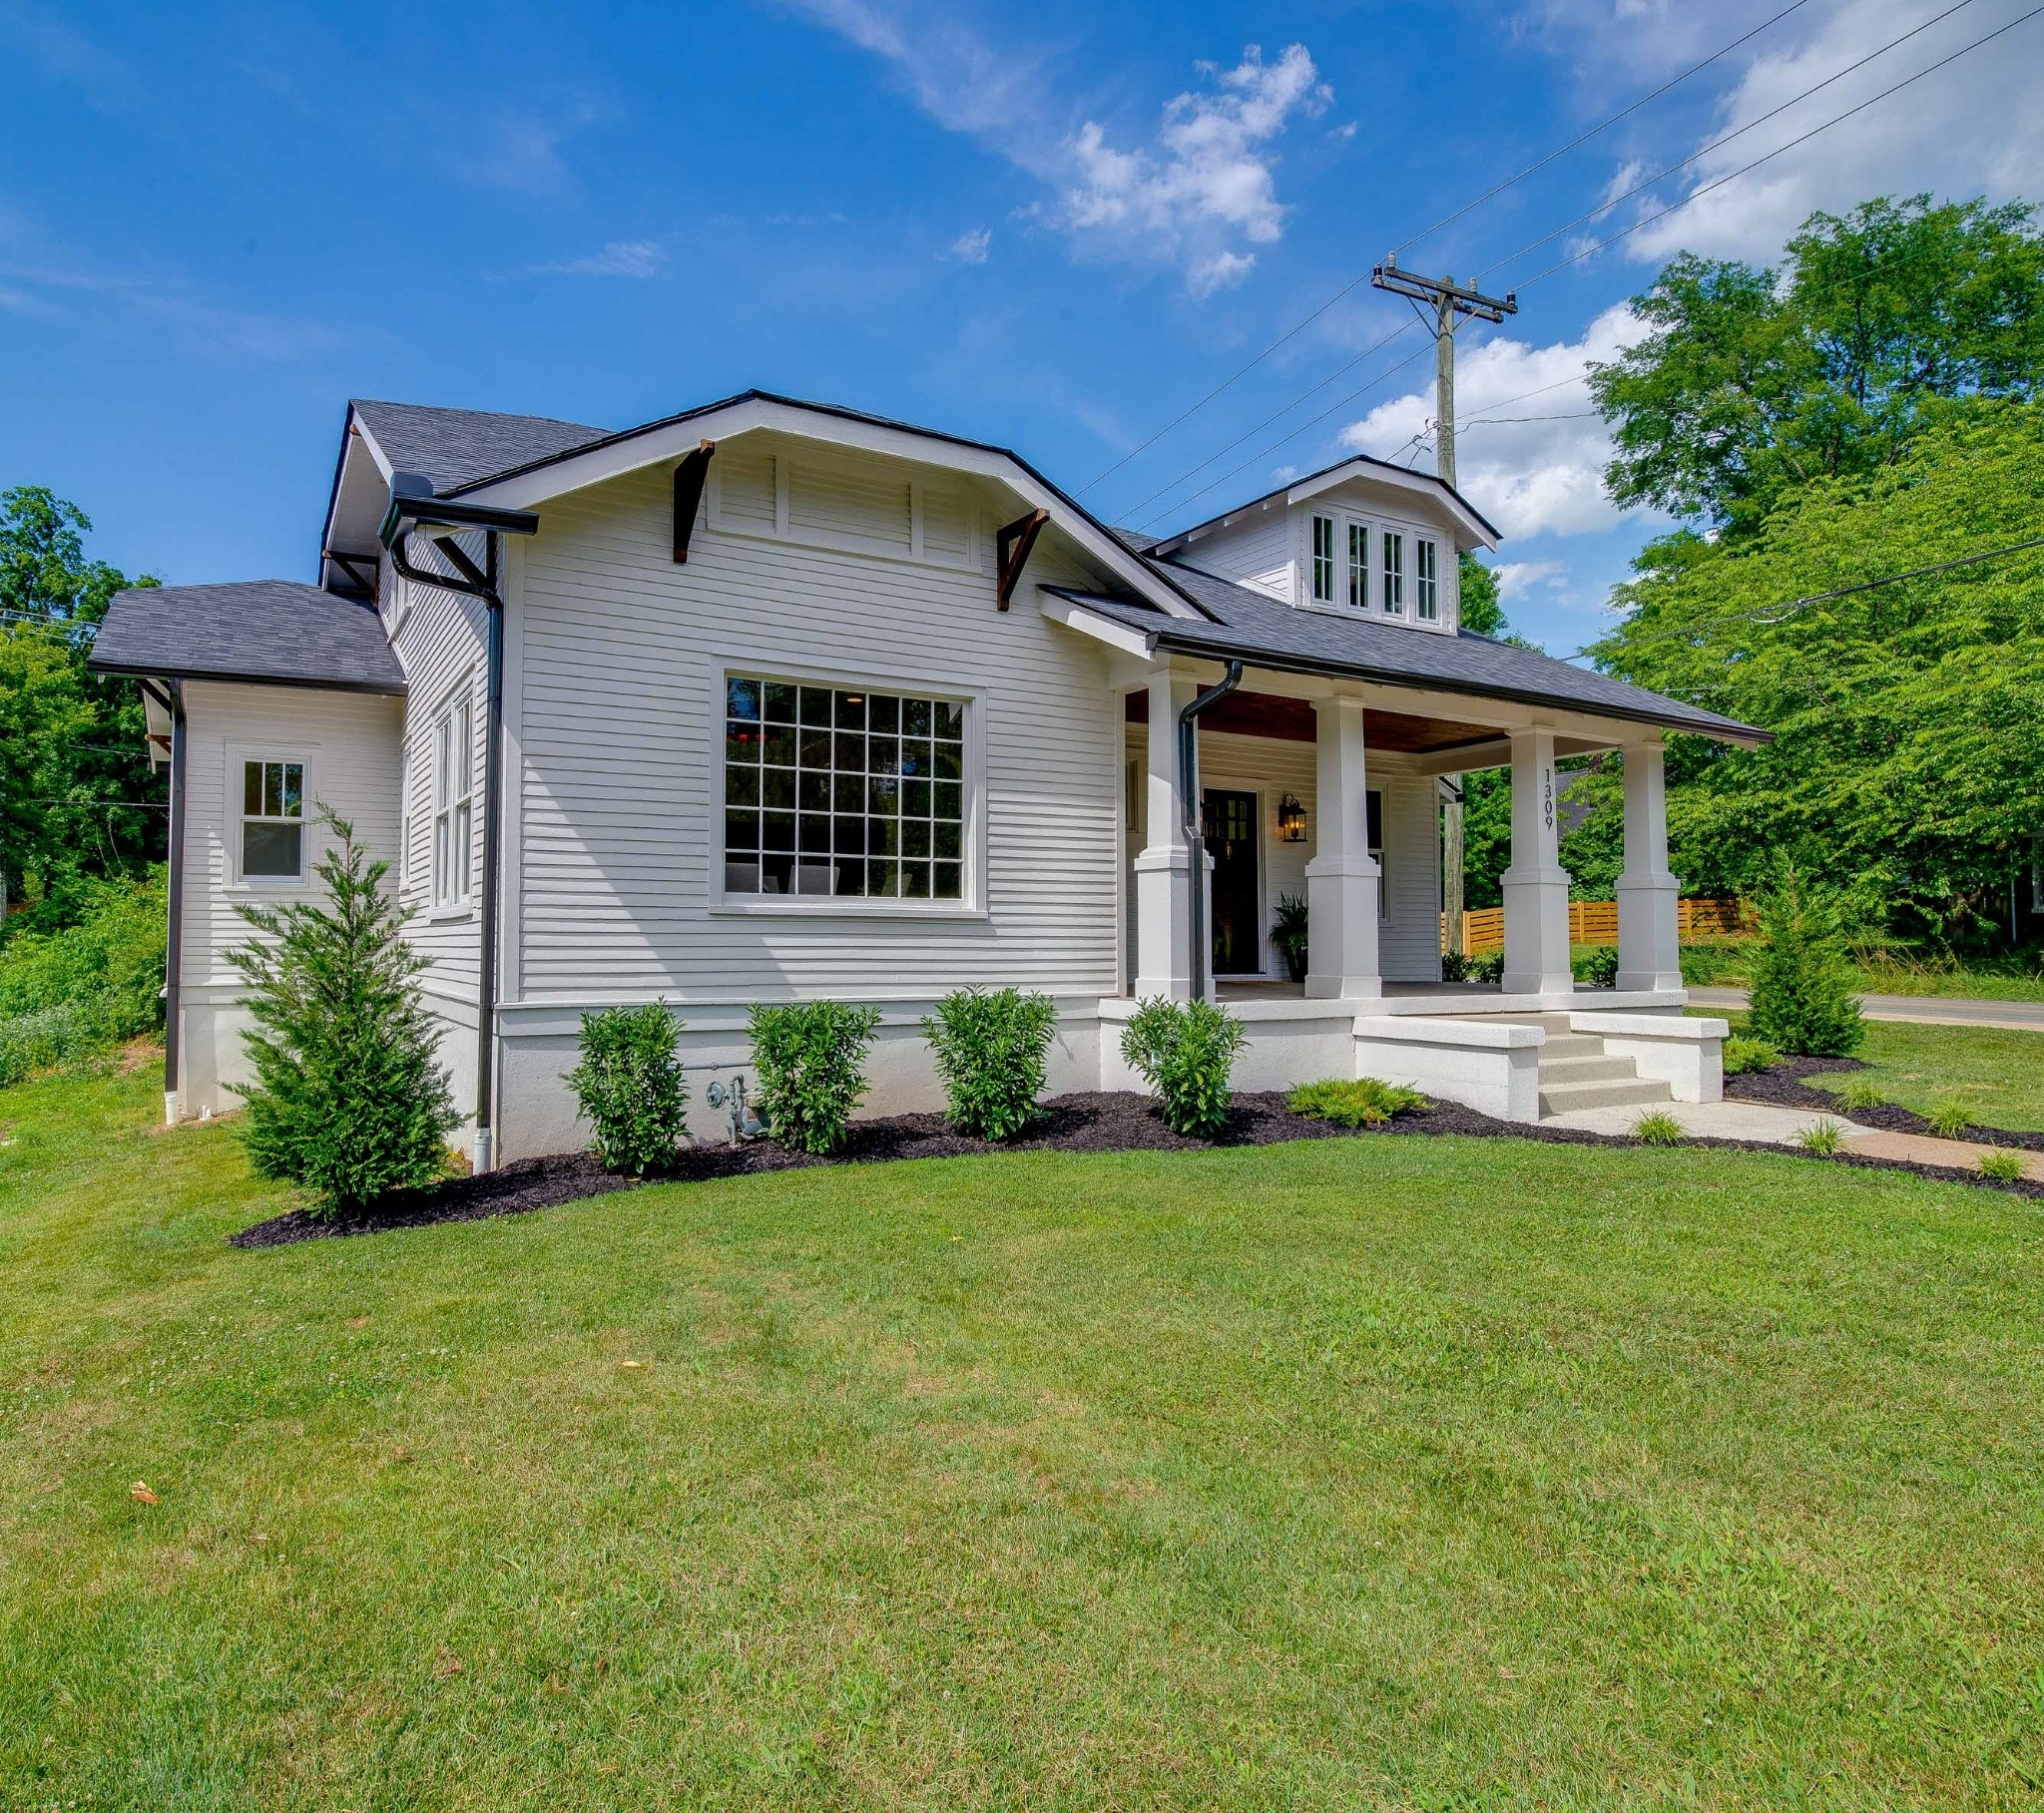 Historic meets Modern!!! Nothing untouched on this renovated historic bungalow in Lockeland Springs on Edgewood Place, the best kept secret in E. Nashville! Tons of character brought back to life... original doors, trim, hardware, coffered ceilings, wainscoting, butler's pantry, brick fireplace, clawfoot tub, & hardwood have been revitalized in this timeless showplace! Professionally designed! Expansion area in basement! Huge corner lot with endless possibilities... DADU approved!!! Owner/Agent